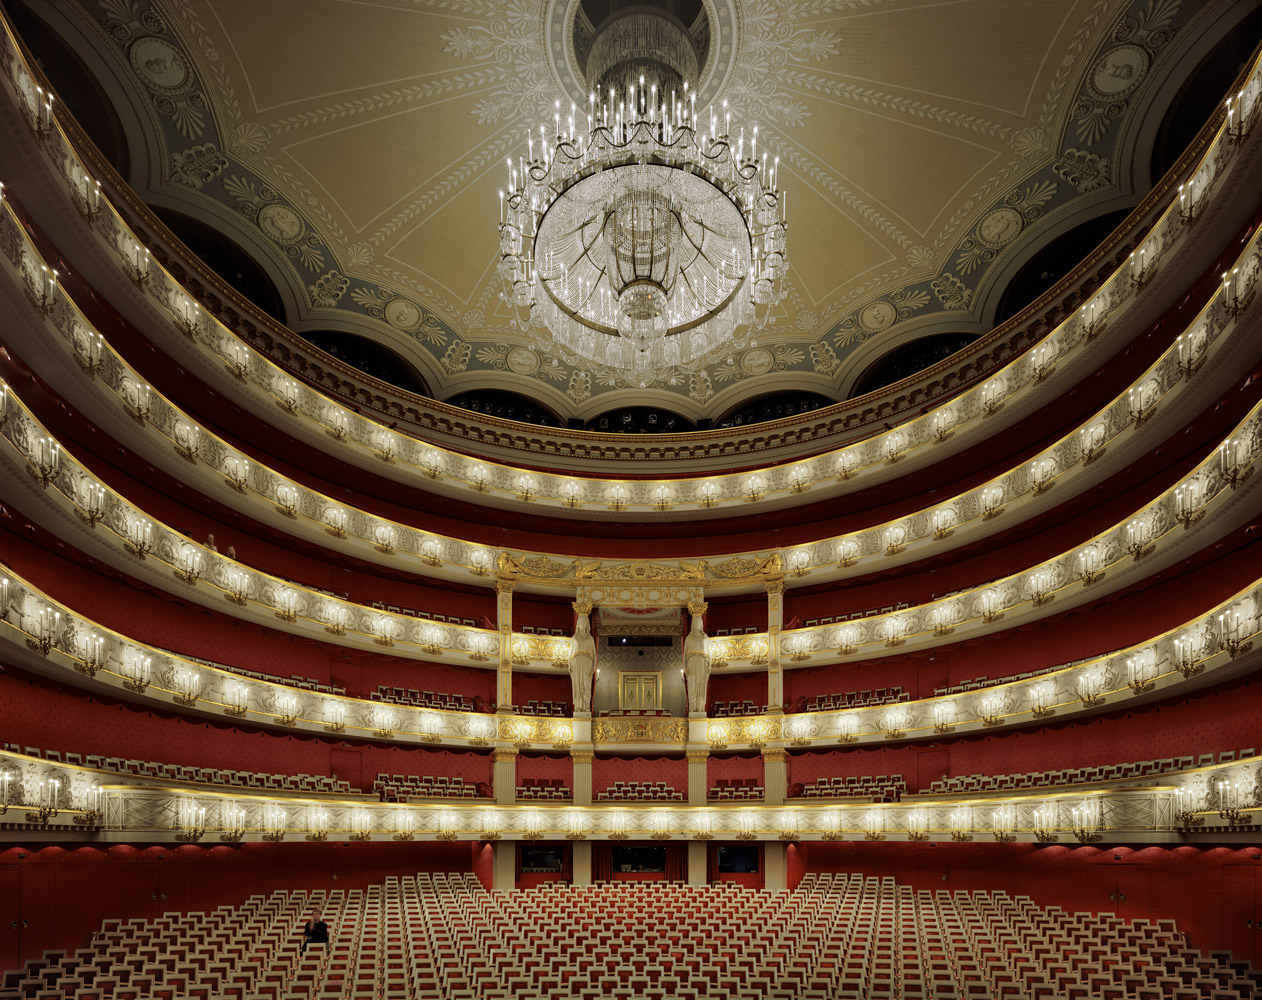 Bayerische Staatsoper, Munich, Germany, 2009, by David Leventi. Archive print on Dibond of the interior of the Bavarian State Opera.